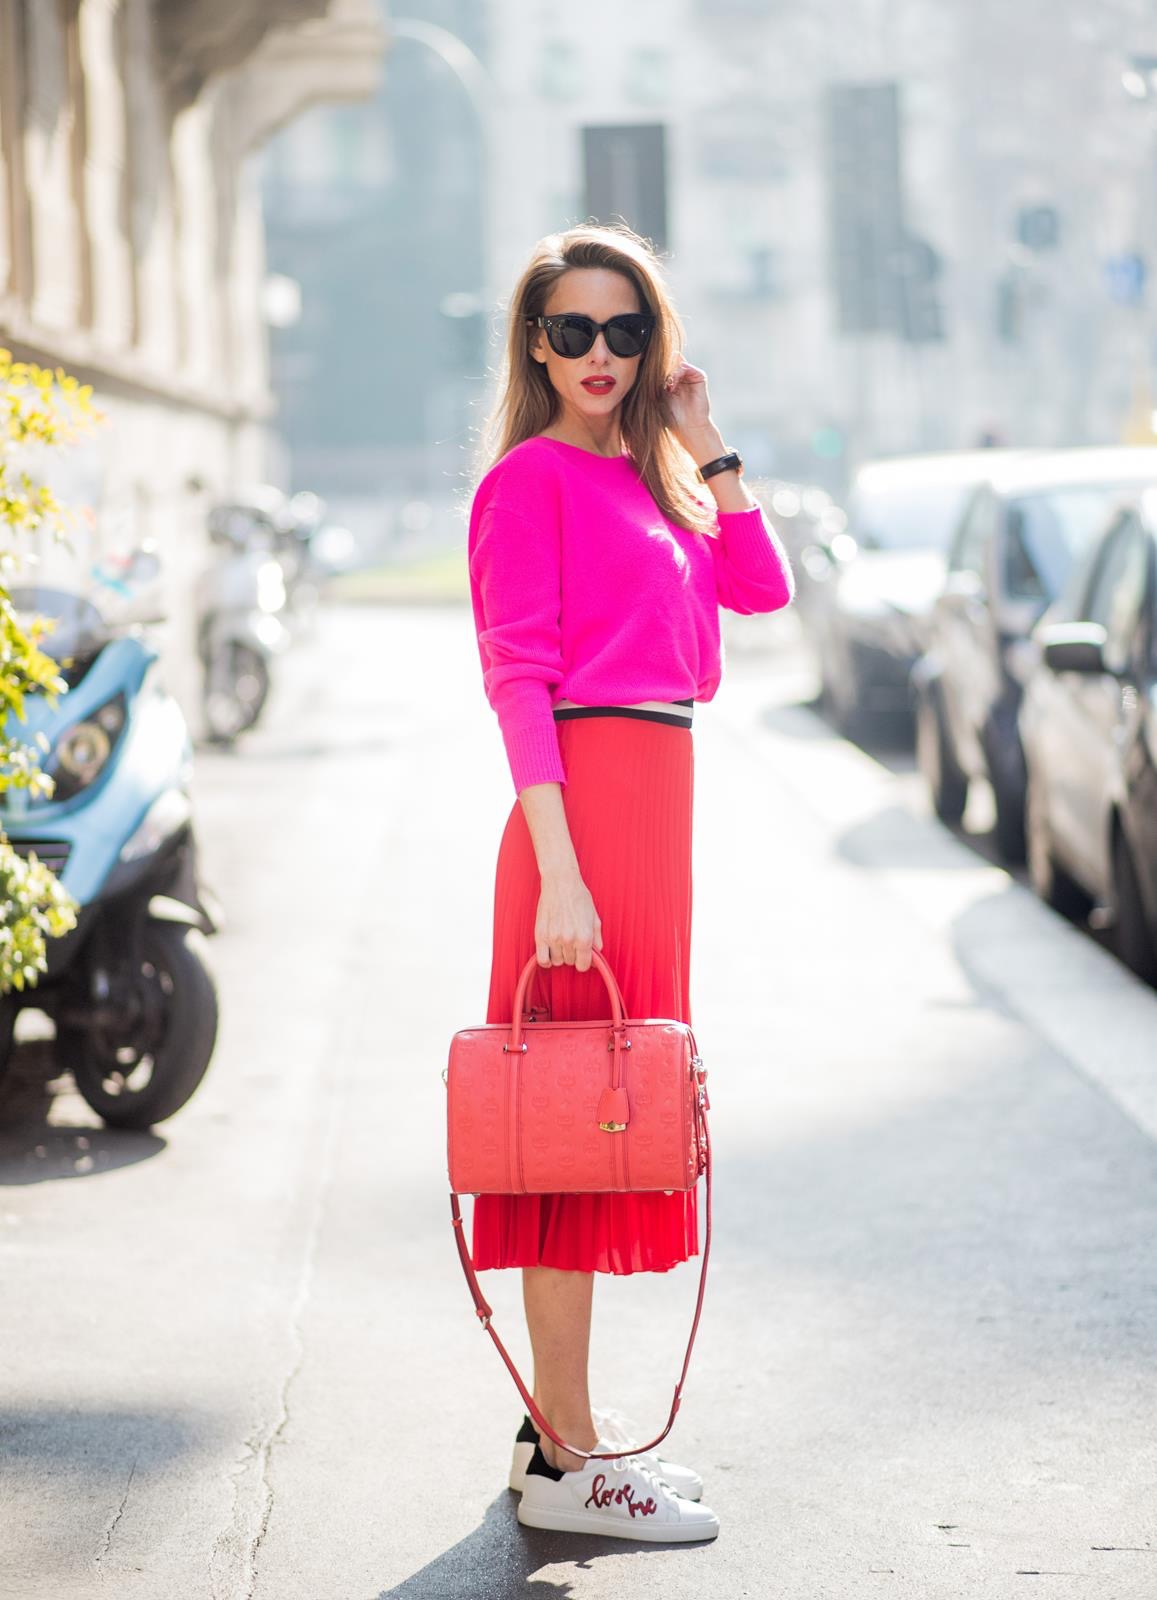 fdc3800b2952 ... ITALY - FEBRUARY 21  Model and Blogger Alexandra Lapp wearing pink and  red ...